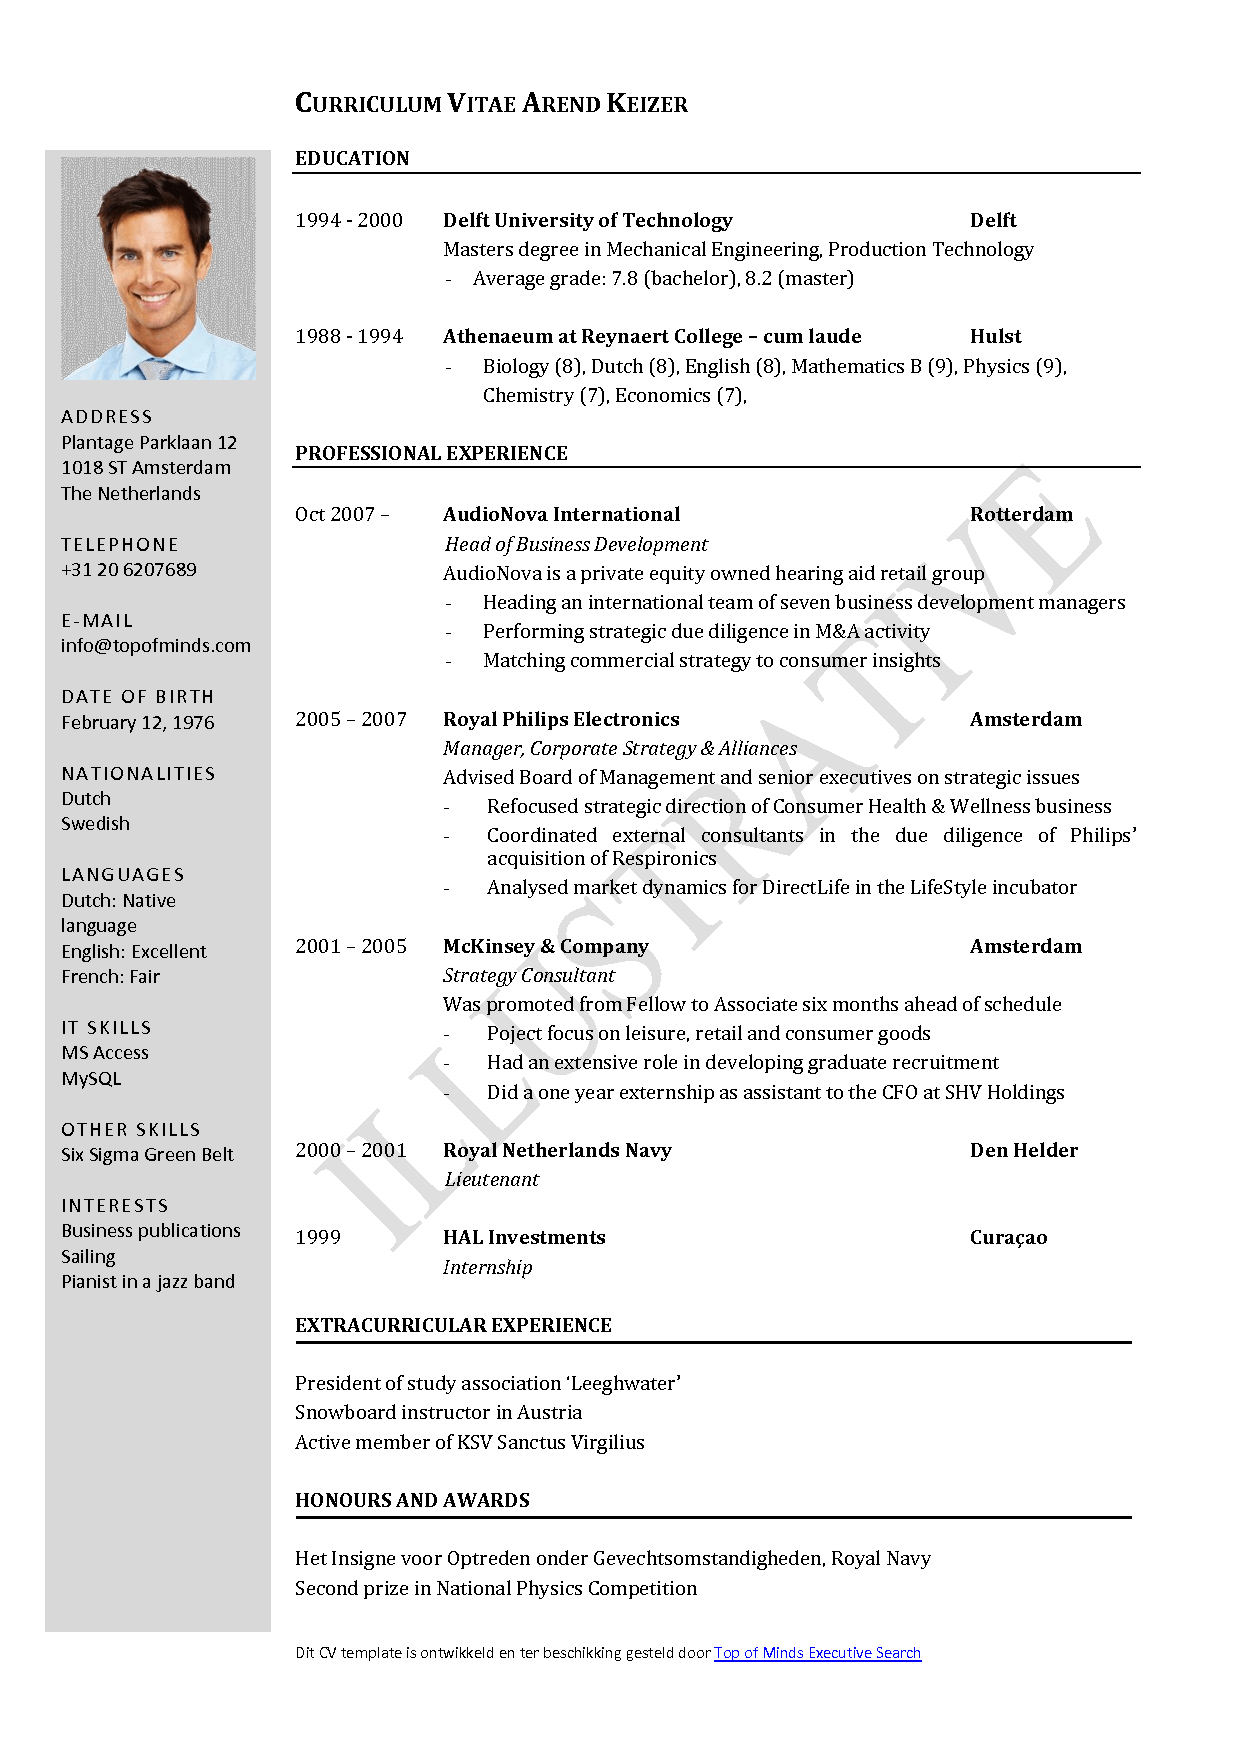 Job Application Cv Pdf Basic Job Application Templates Download Free ...